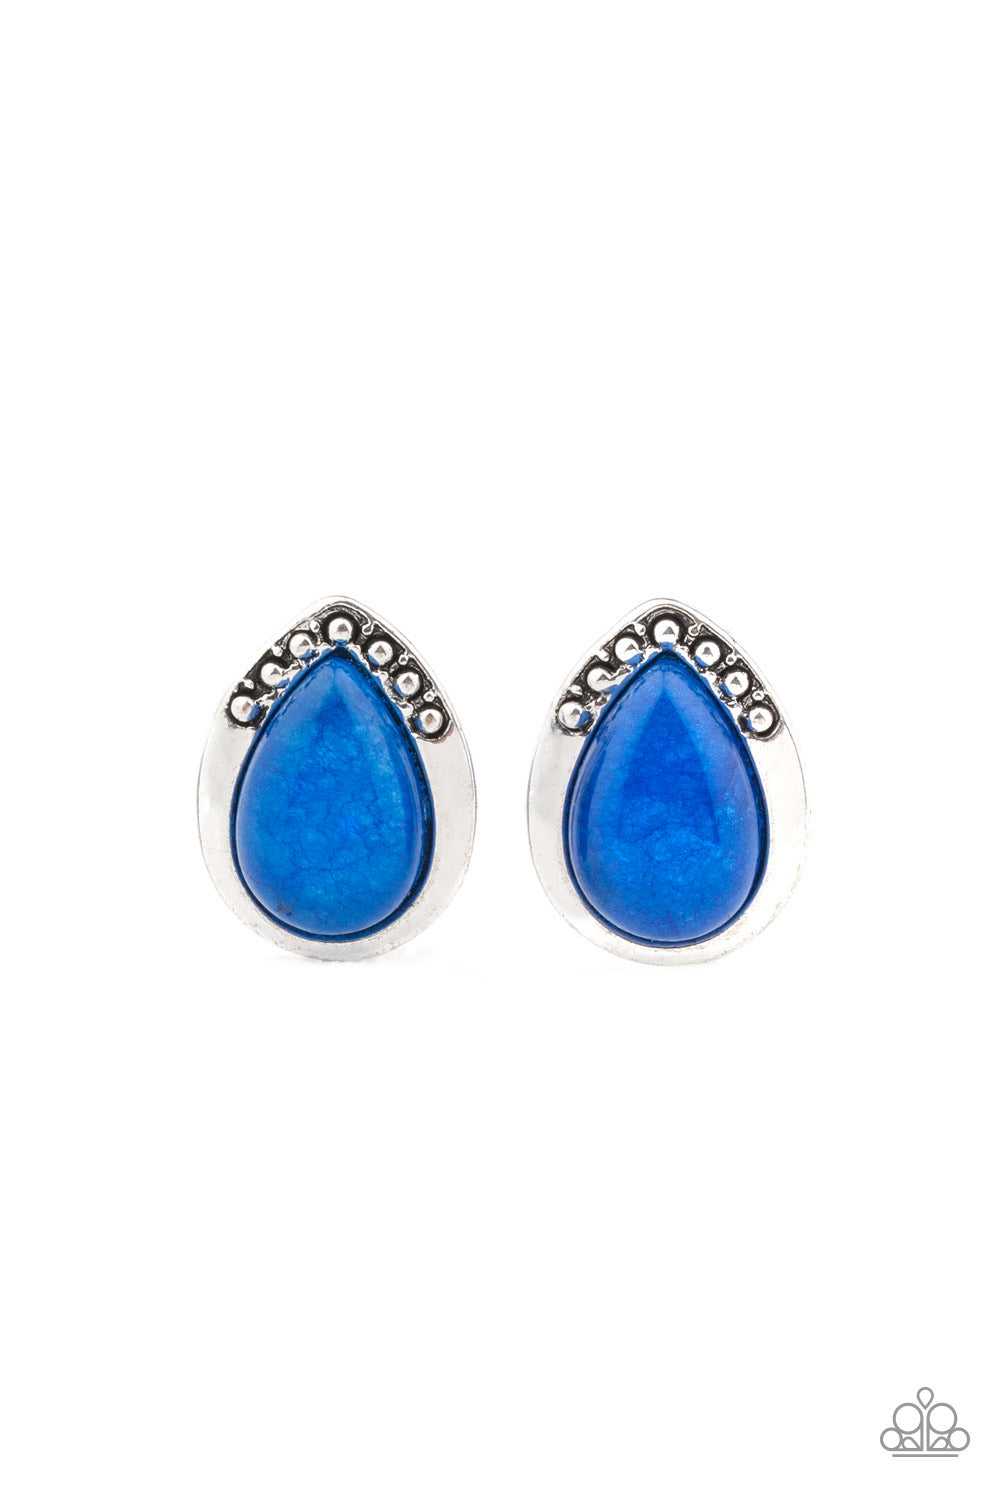 Stone Spectacular - Blue Stone Earrings -Paparazzi Accessories